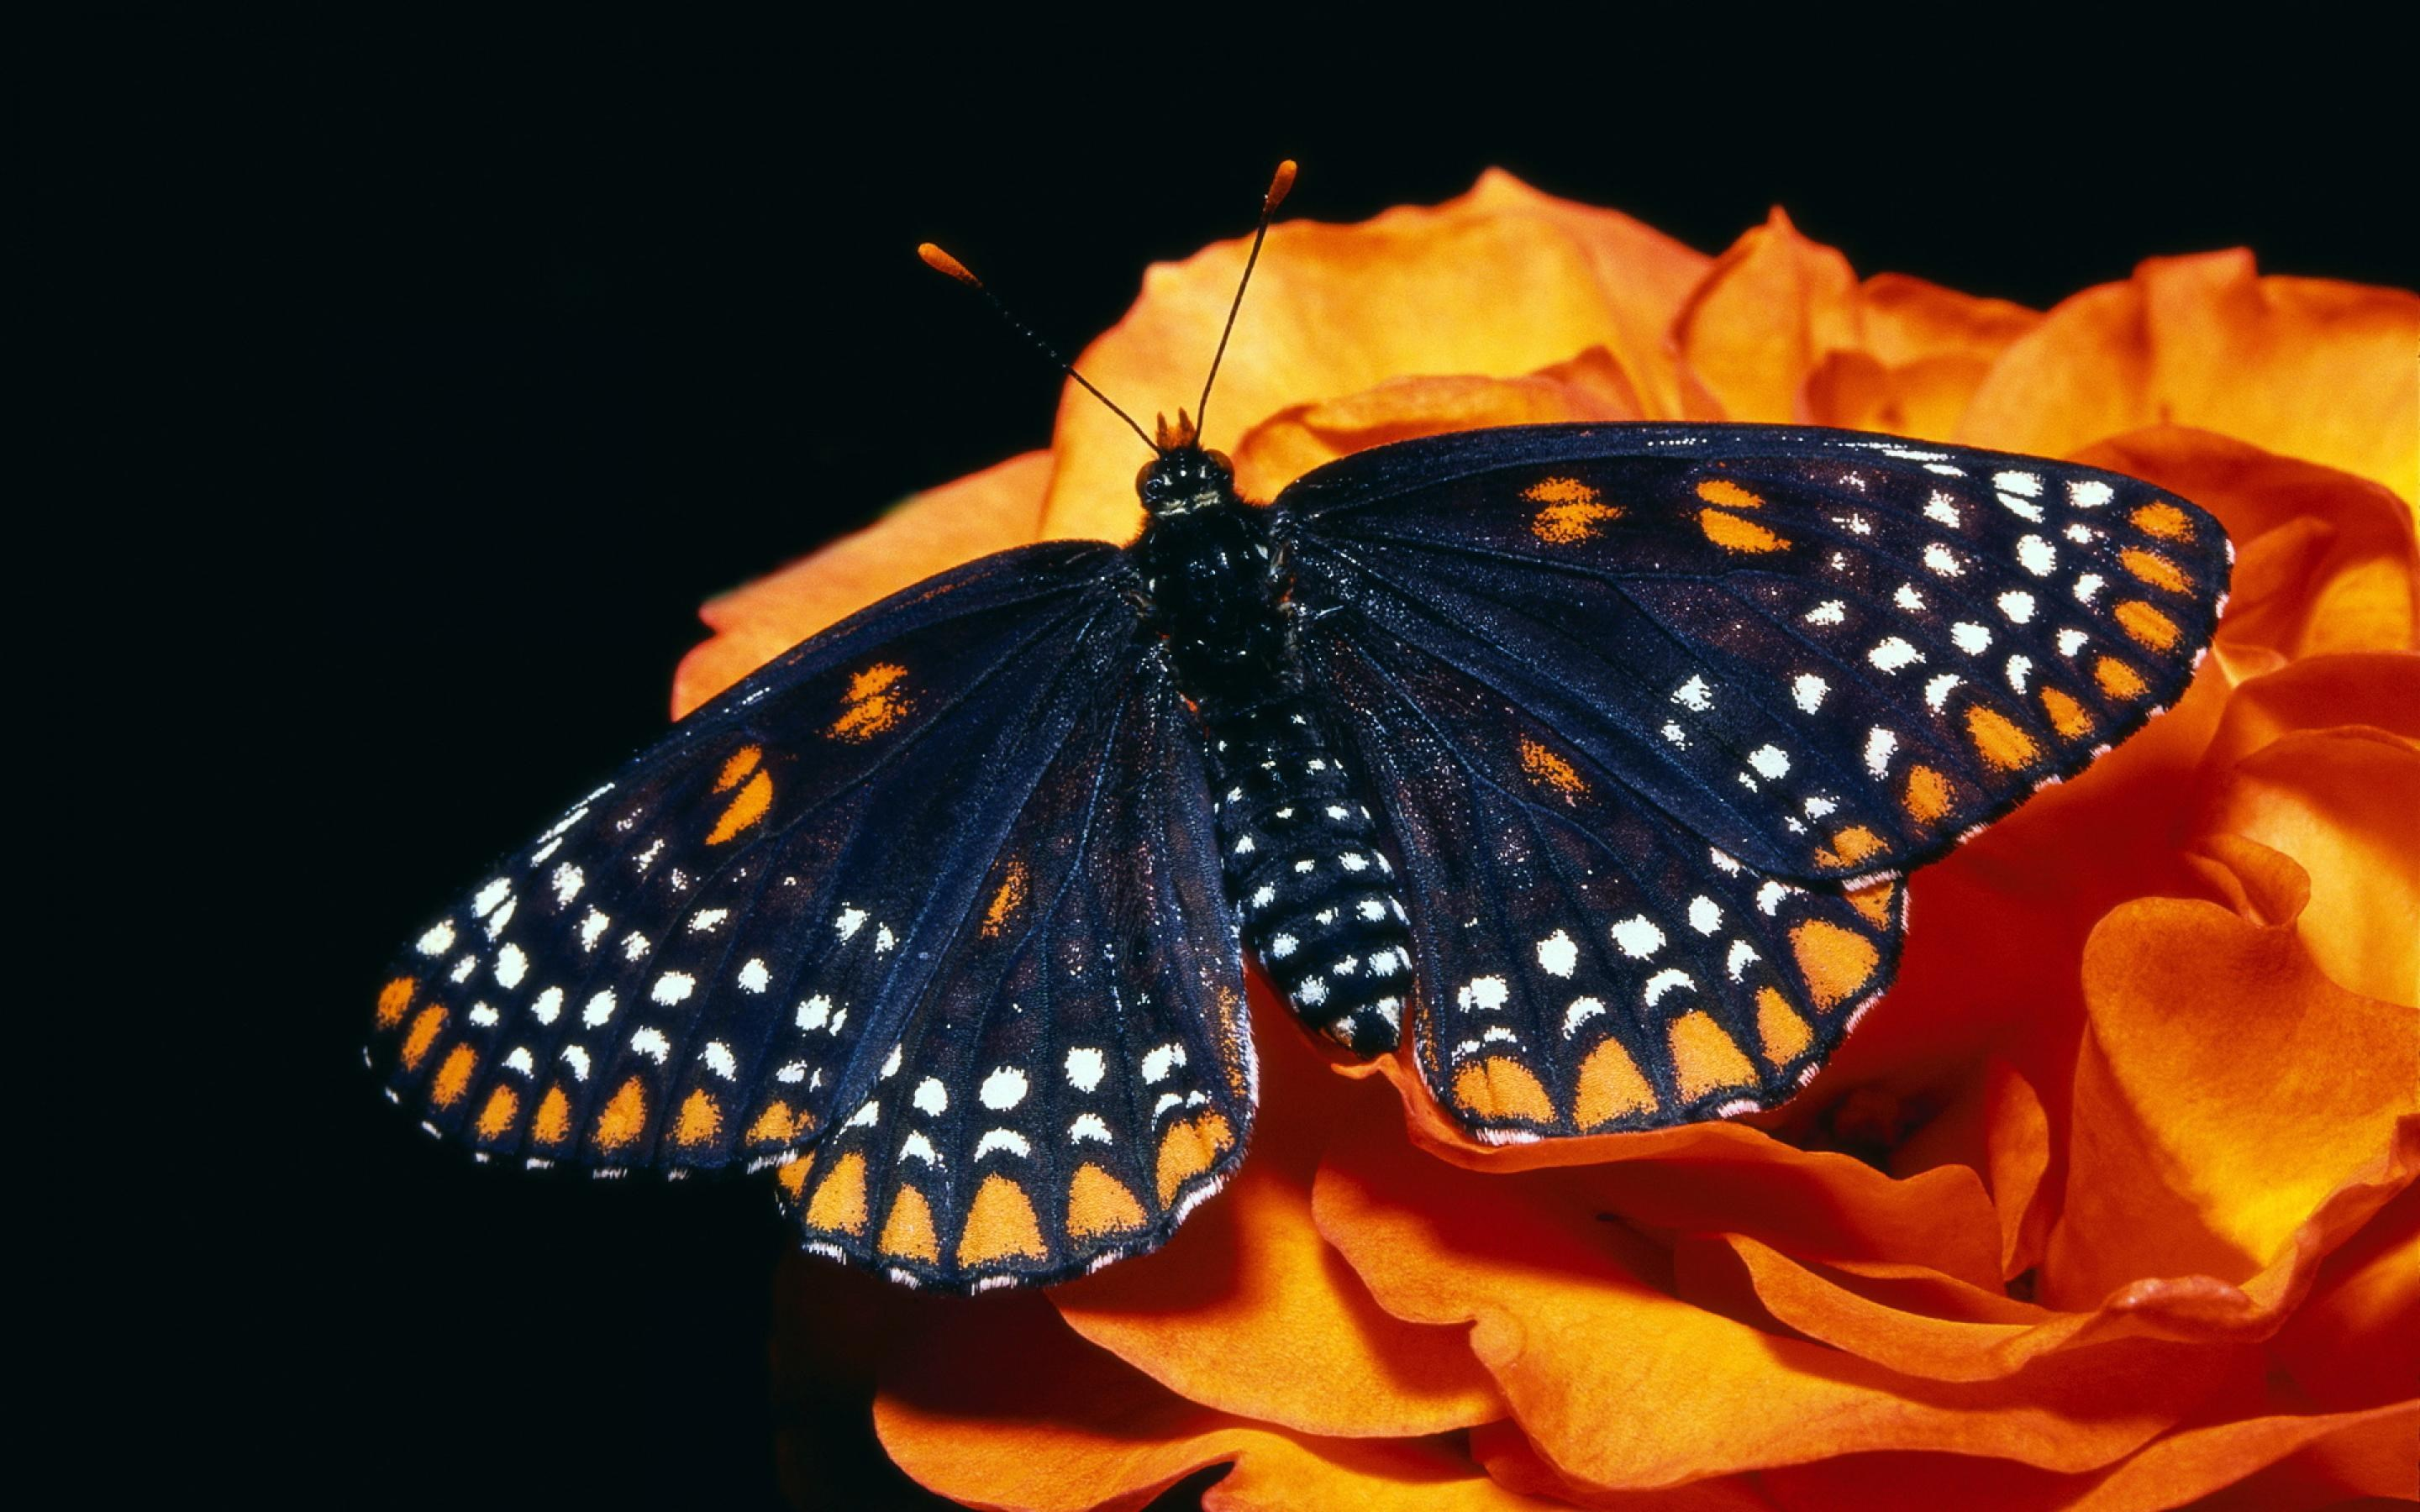 Black And Orange Butterfly 485535 Hd Wallpaper Backgrounds Download